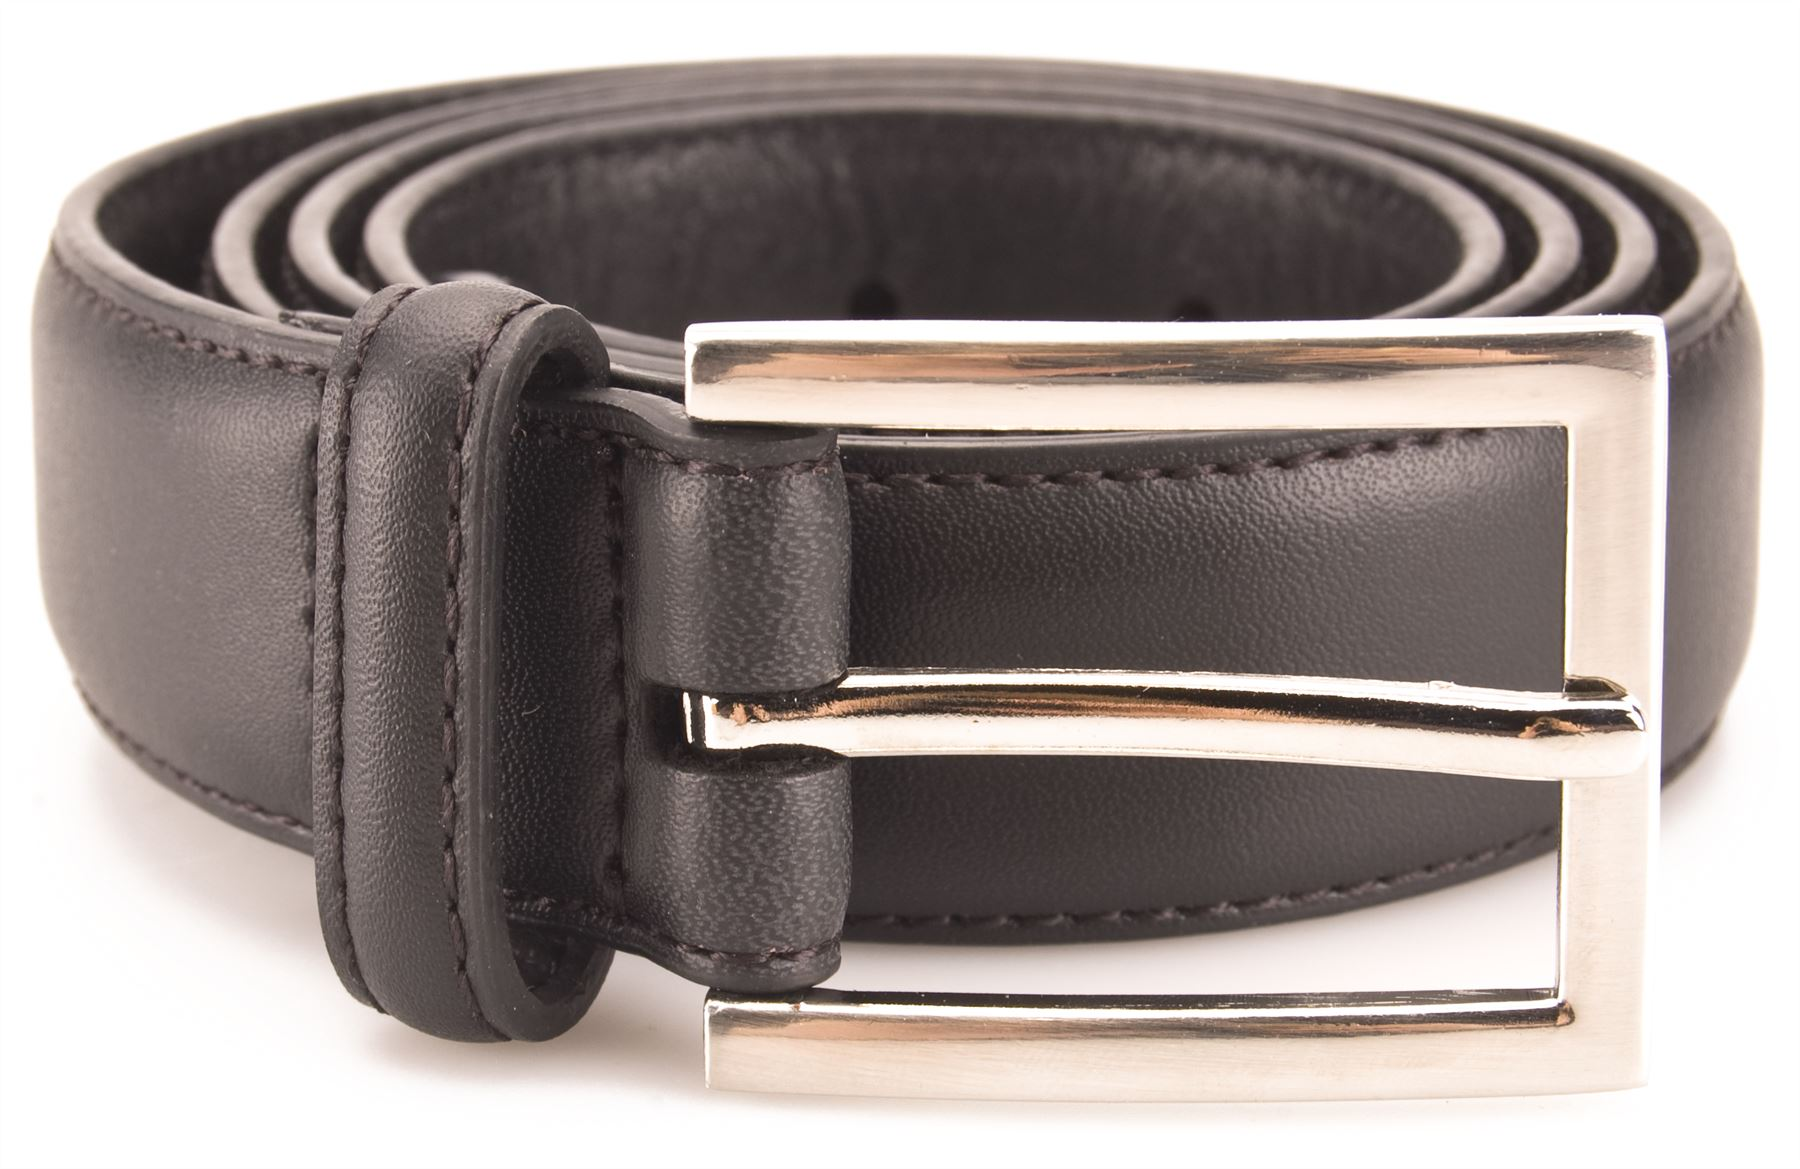 Mens Belts Find the finishing touch to your smart and casual looks with our new season collection of men's belts. From timeless tan to classic black, suede to leather and braided to woven, we've got your on and off-duty style sorted.